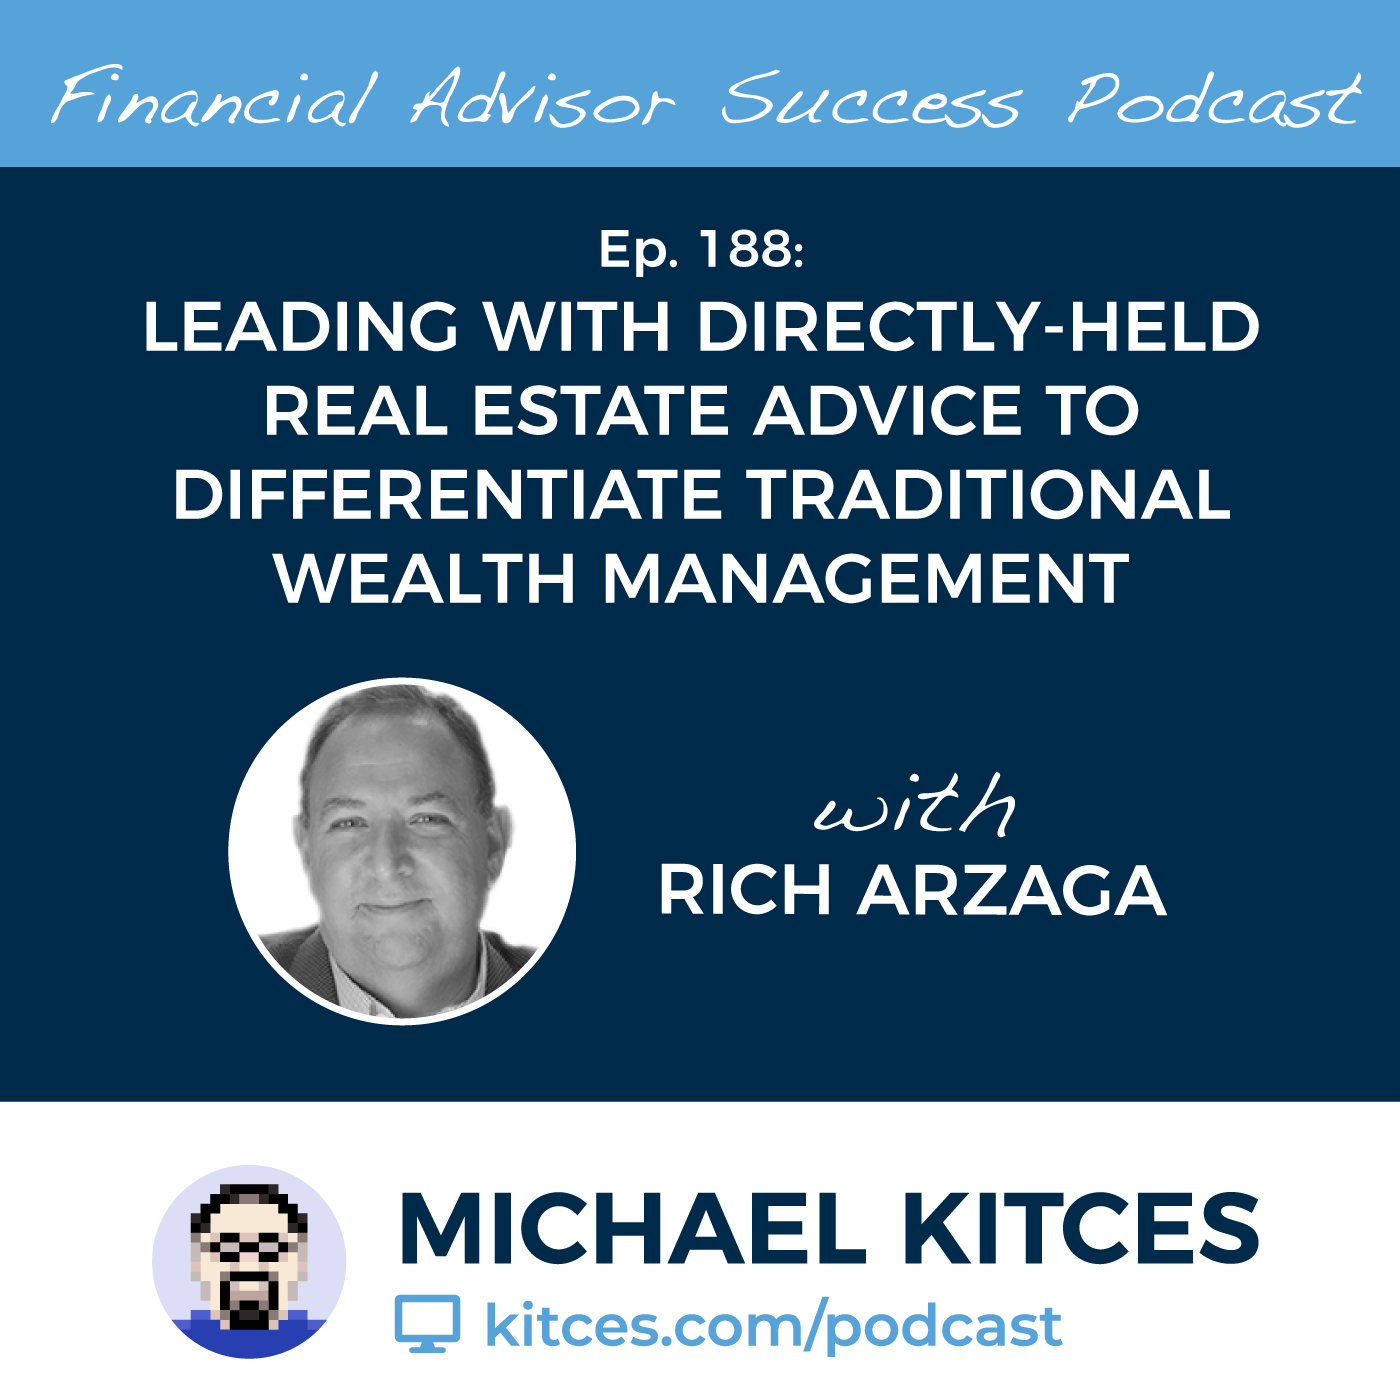 Ep 188: Leading With Directly-Held Real Estate Advice To Differentiate Traditional Wealth Management with Rich Arzaga